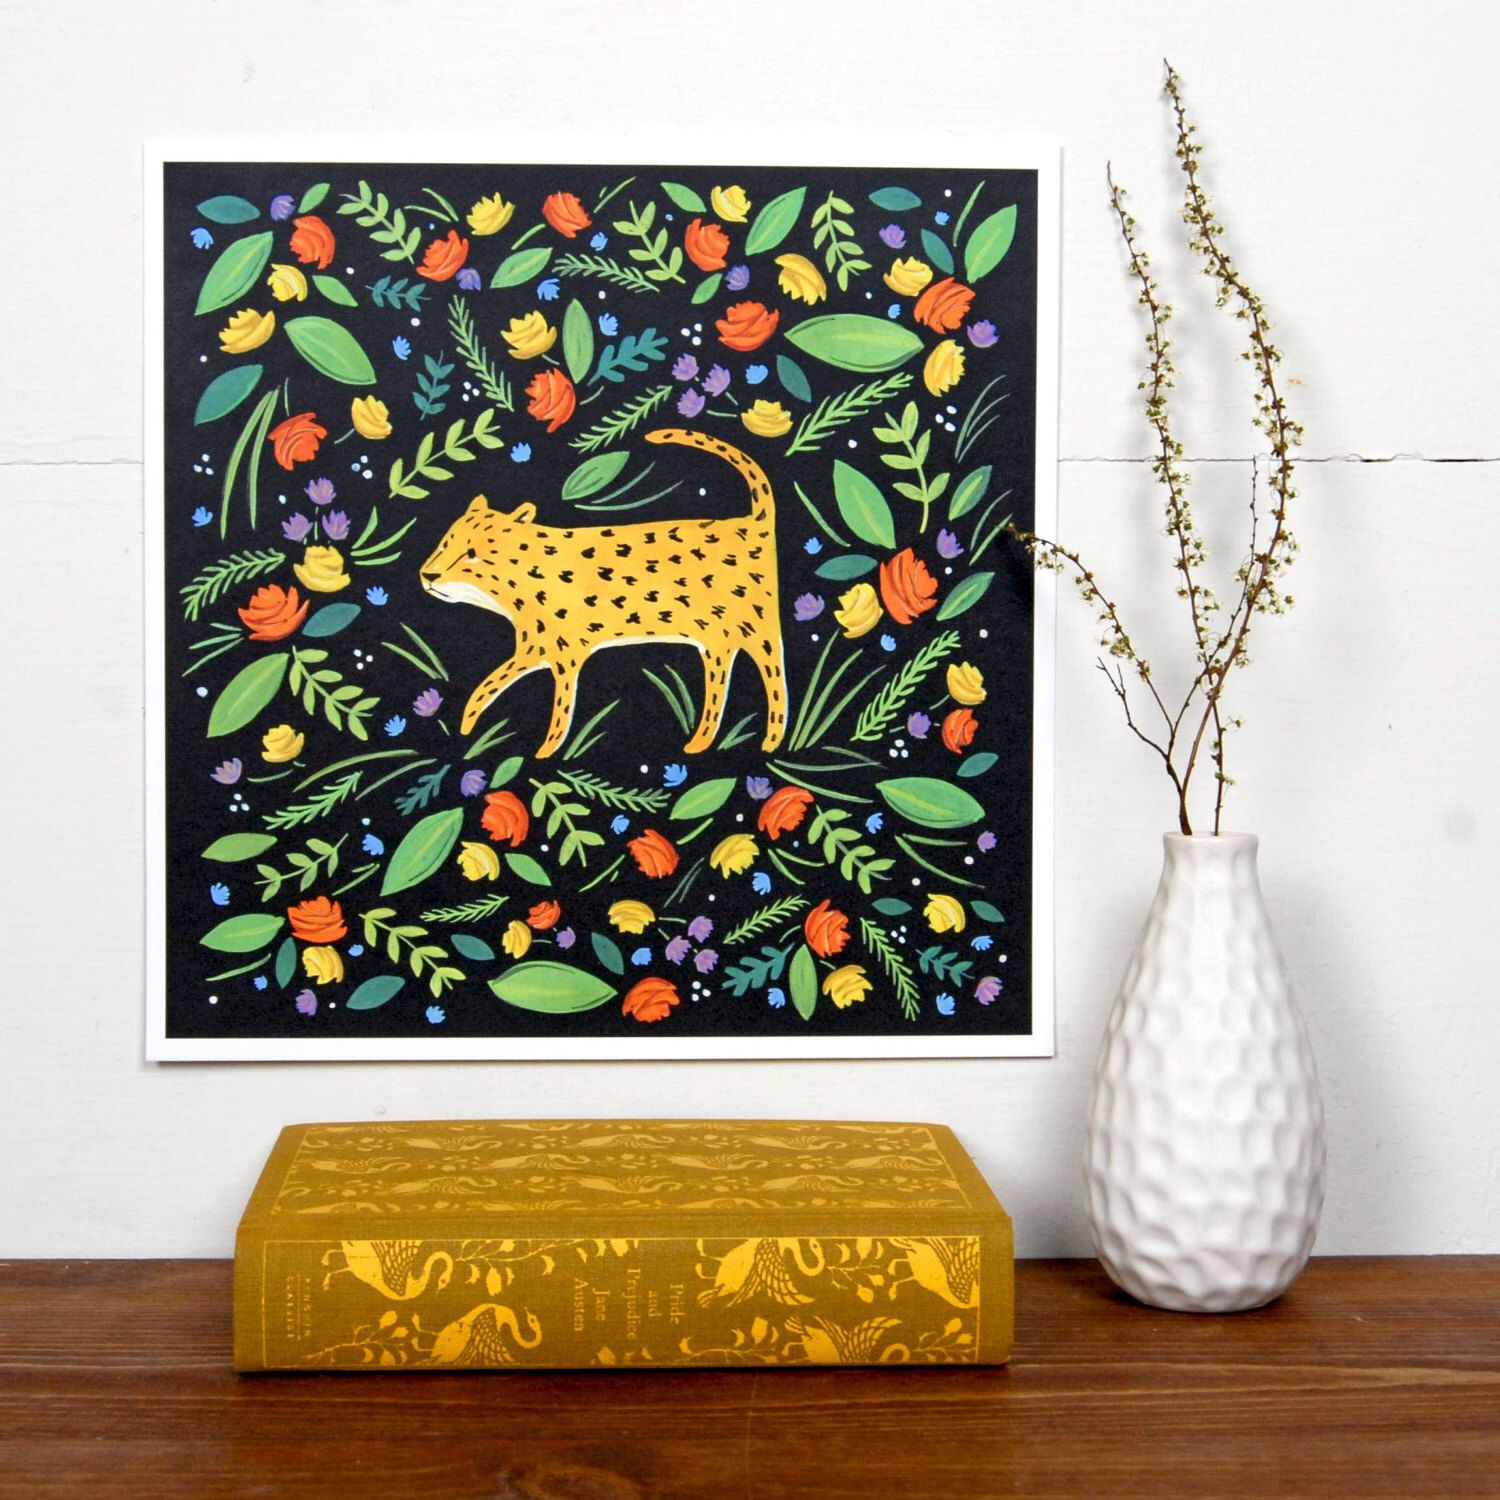 Lonely Hunter by wildwanderco on Etsy https://www.etsy.com/listing/241719387/lonely-hunter